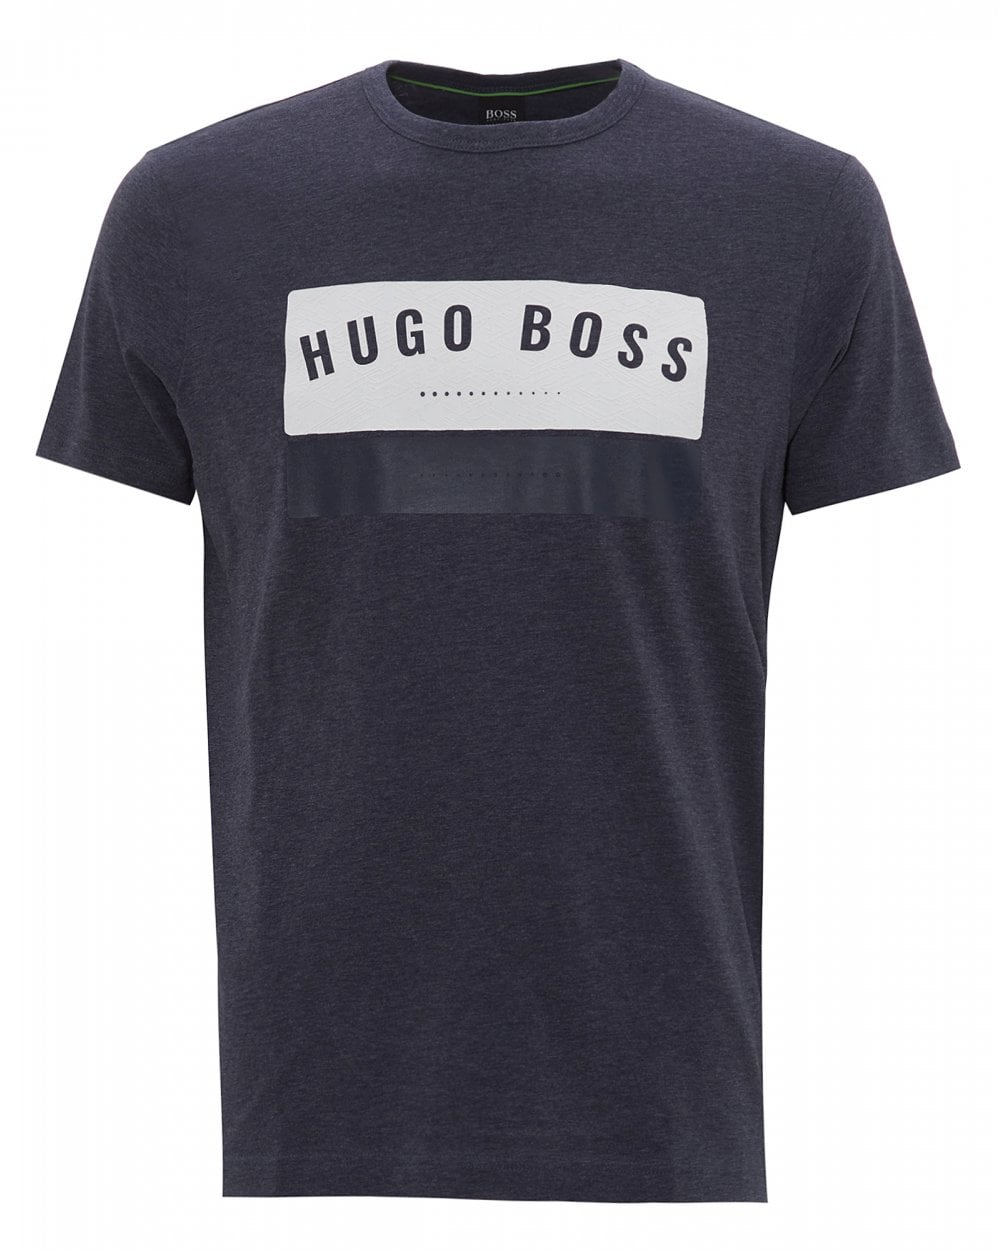 3a21515fb BOSS Mens Tee 1 Logo T-Shirt, Denim Blue Tee